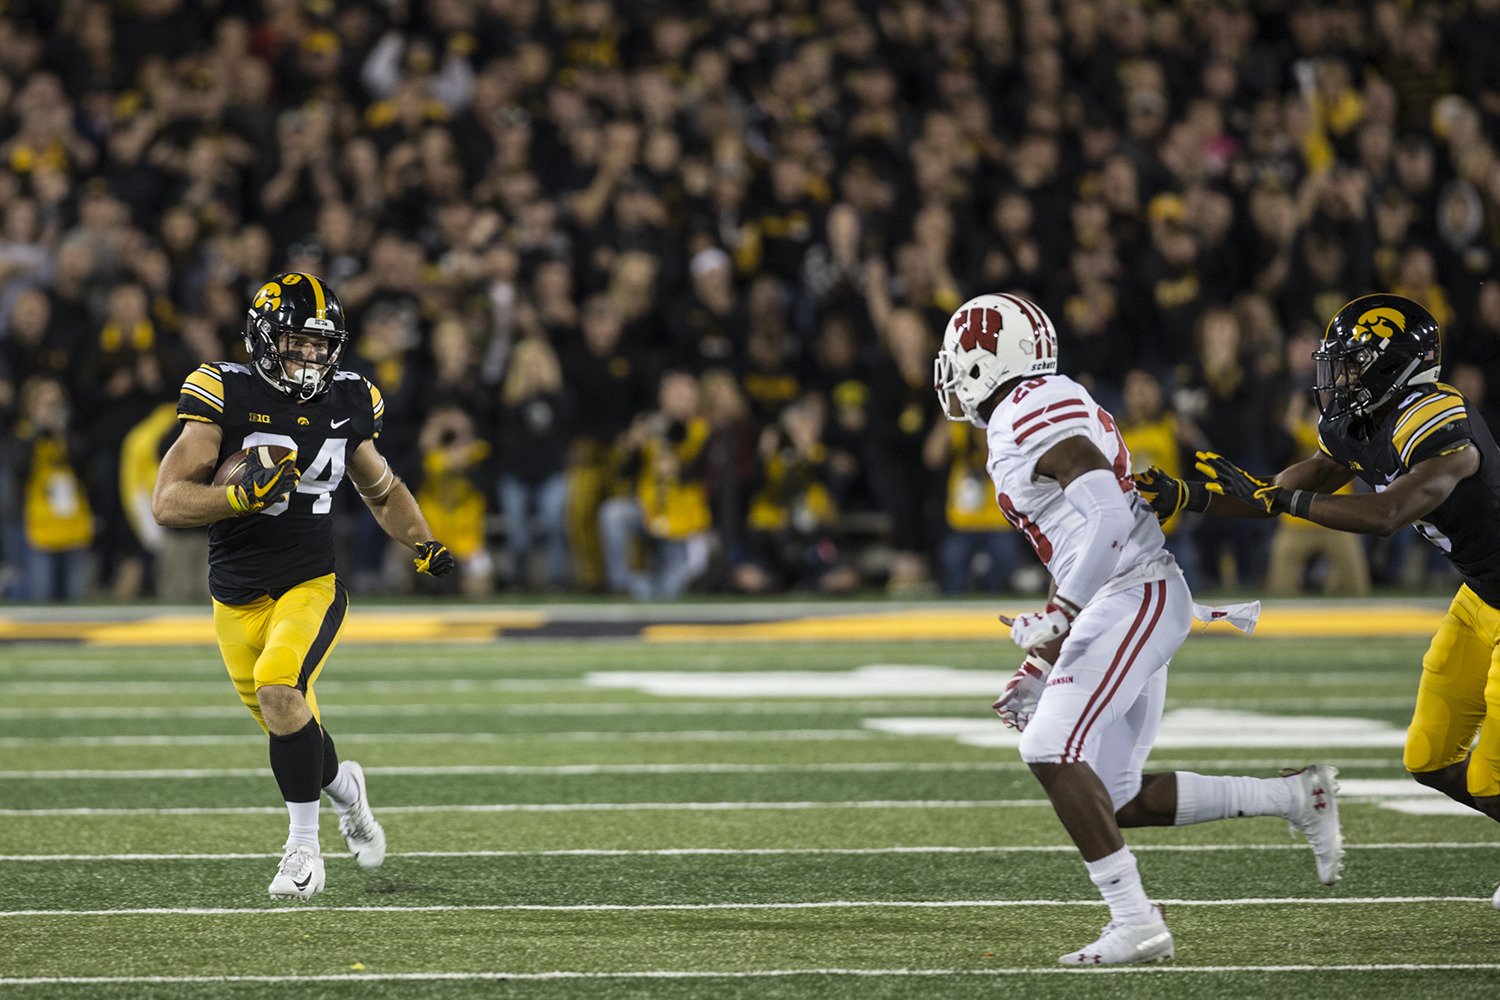 Iowa%27s+Nick+Easley+evades+the+defense+during+a+football+game+between+Iowa+and+Wisconsin+on+Saturday%2C+September+22%2C+2018.+The+Badgers+defeated+the+Hawkeyes%2C+28-17.+%28Shivansh+Ahuja%2FThe+Daily+Iowan%29